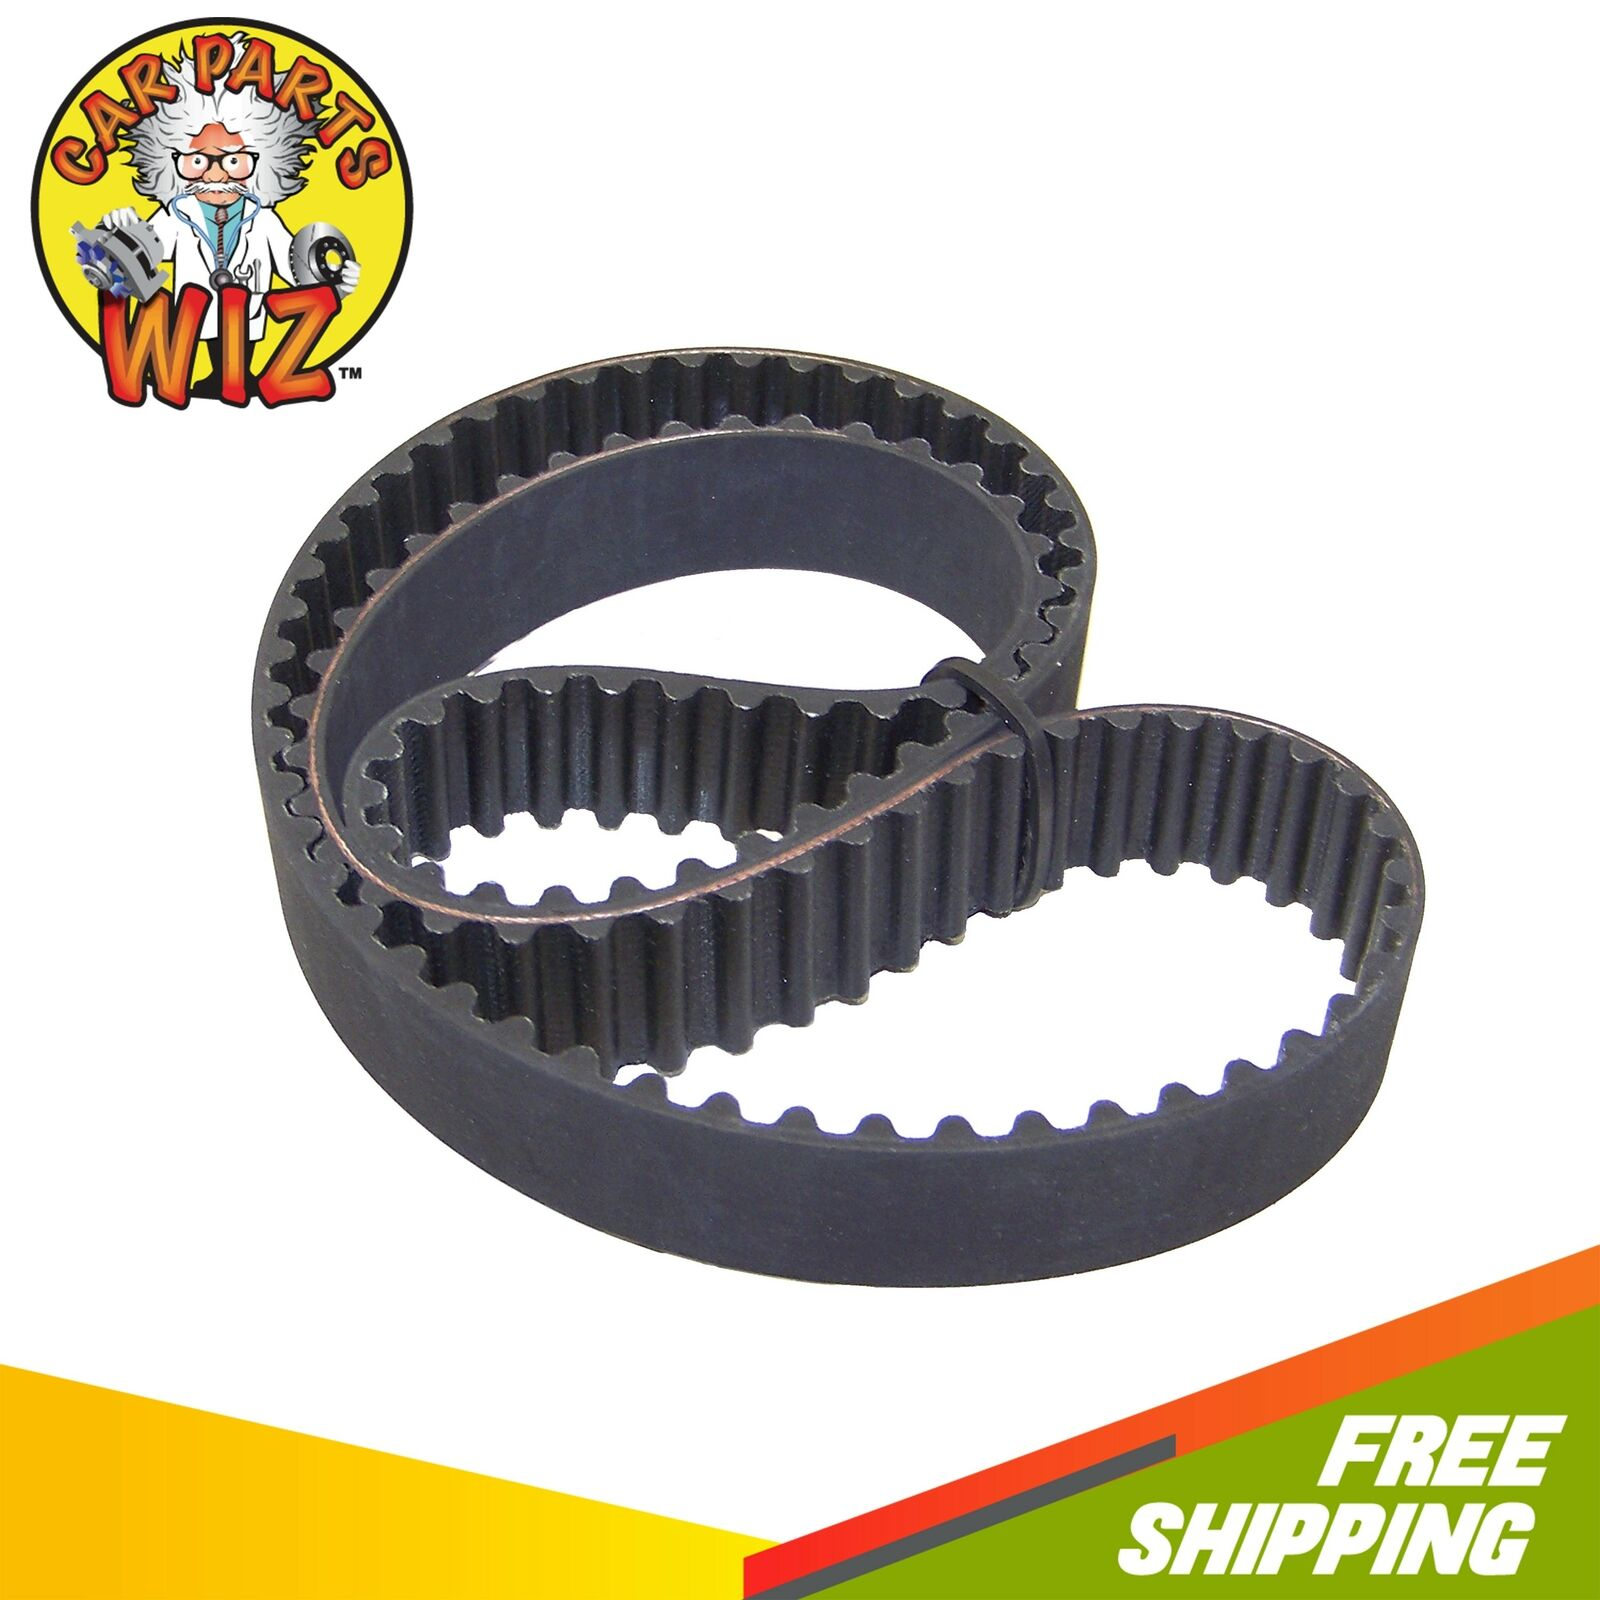 Timing Belt Fits 95 05 Dodge Neon Stratus Chrysler Cirrus Plymouth 2000 300m 1 Of 1free Shipping